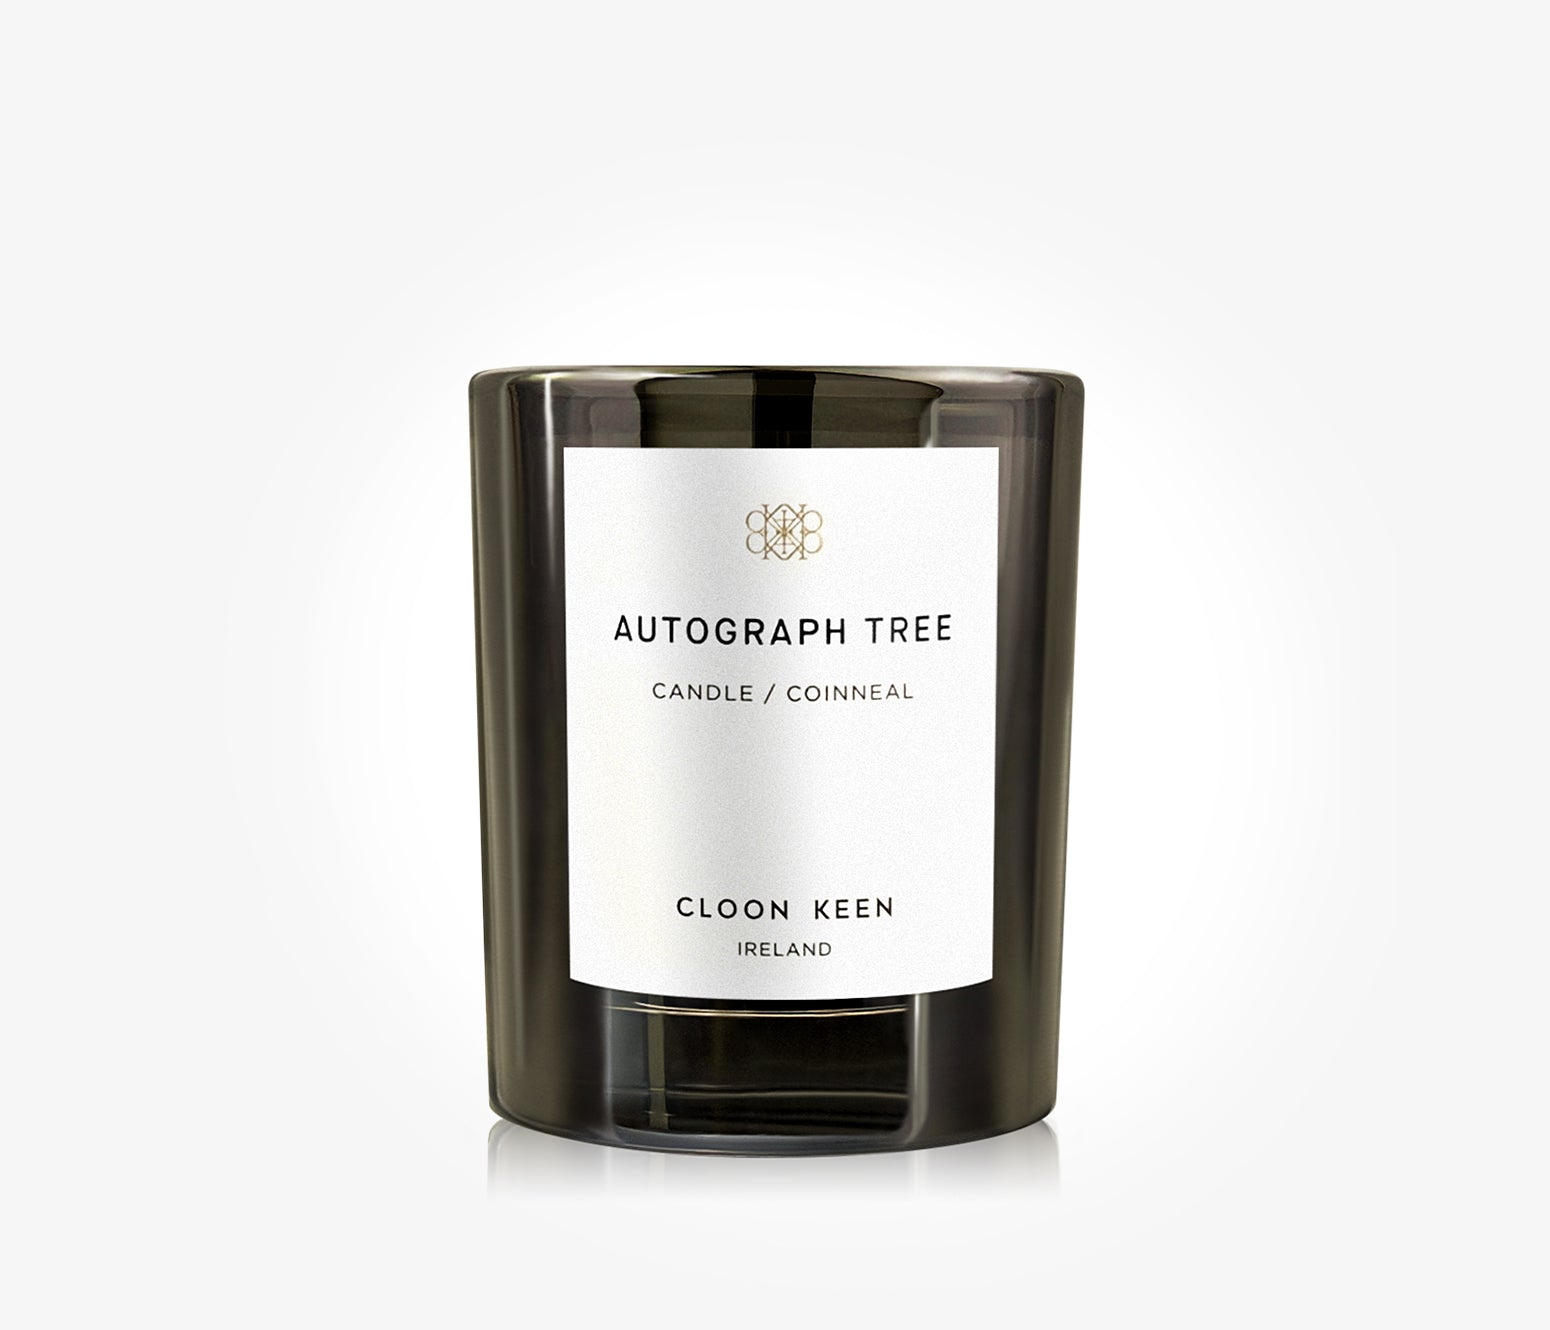 Cloon Keen - Autograph Tree Candle - 280g - DAL5326 - product image - Candle - Les Senteurs